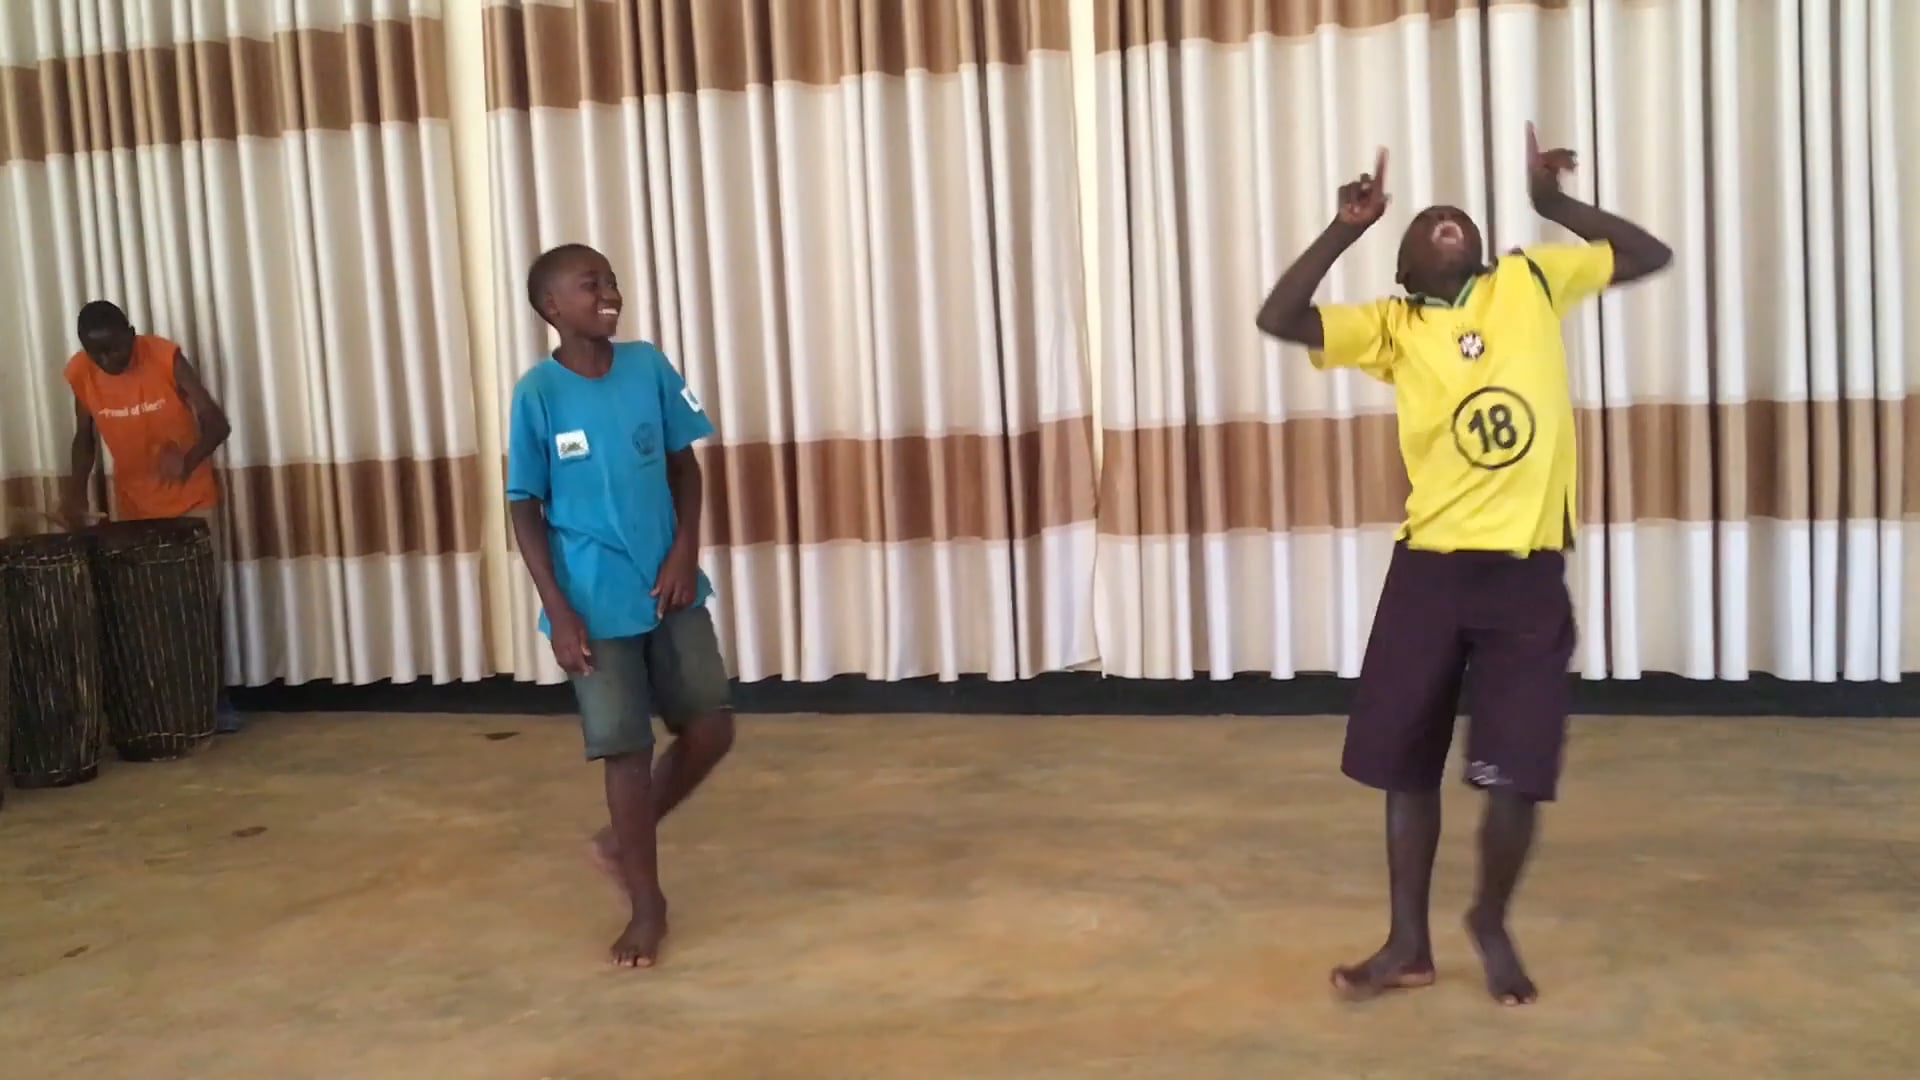 International Sports and Music Project - where your donations go 1/3